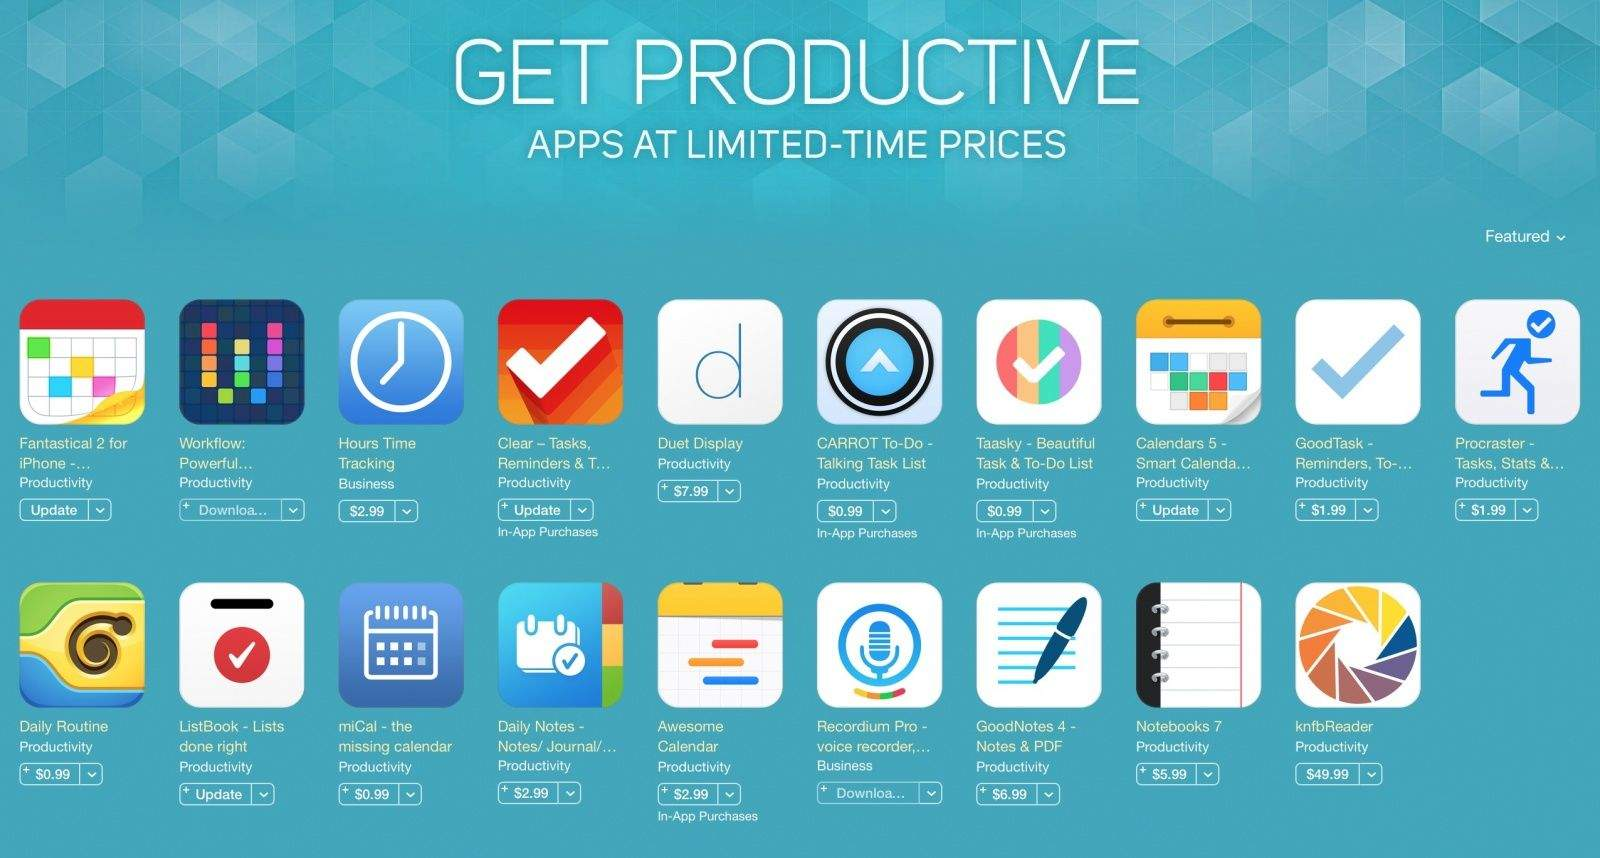 The App Store Is Having A Blowout Sale On Productivity Apps